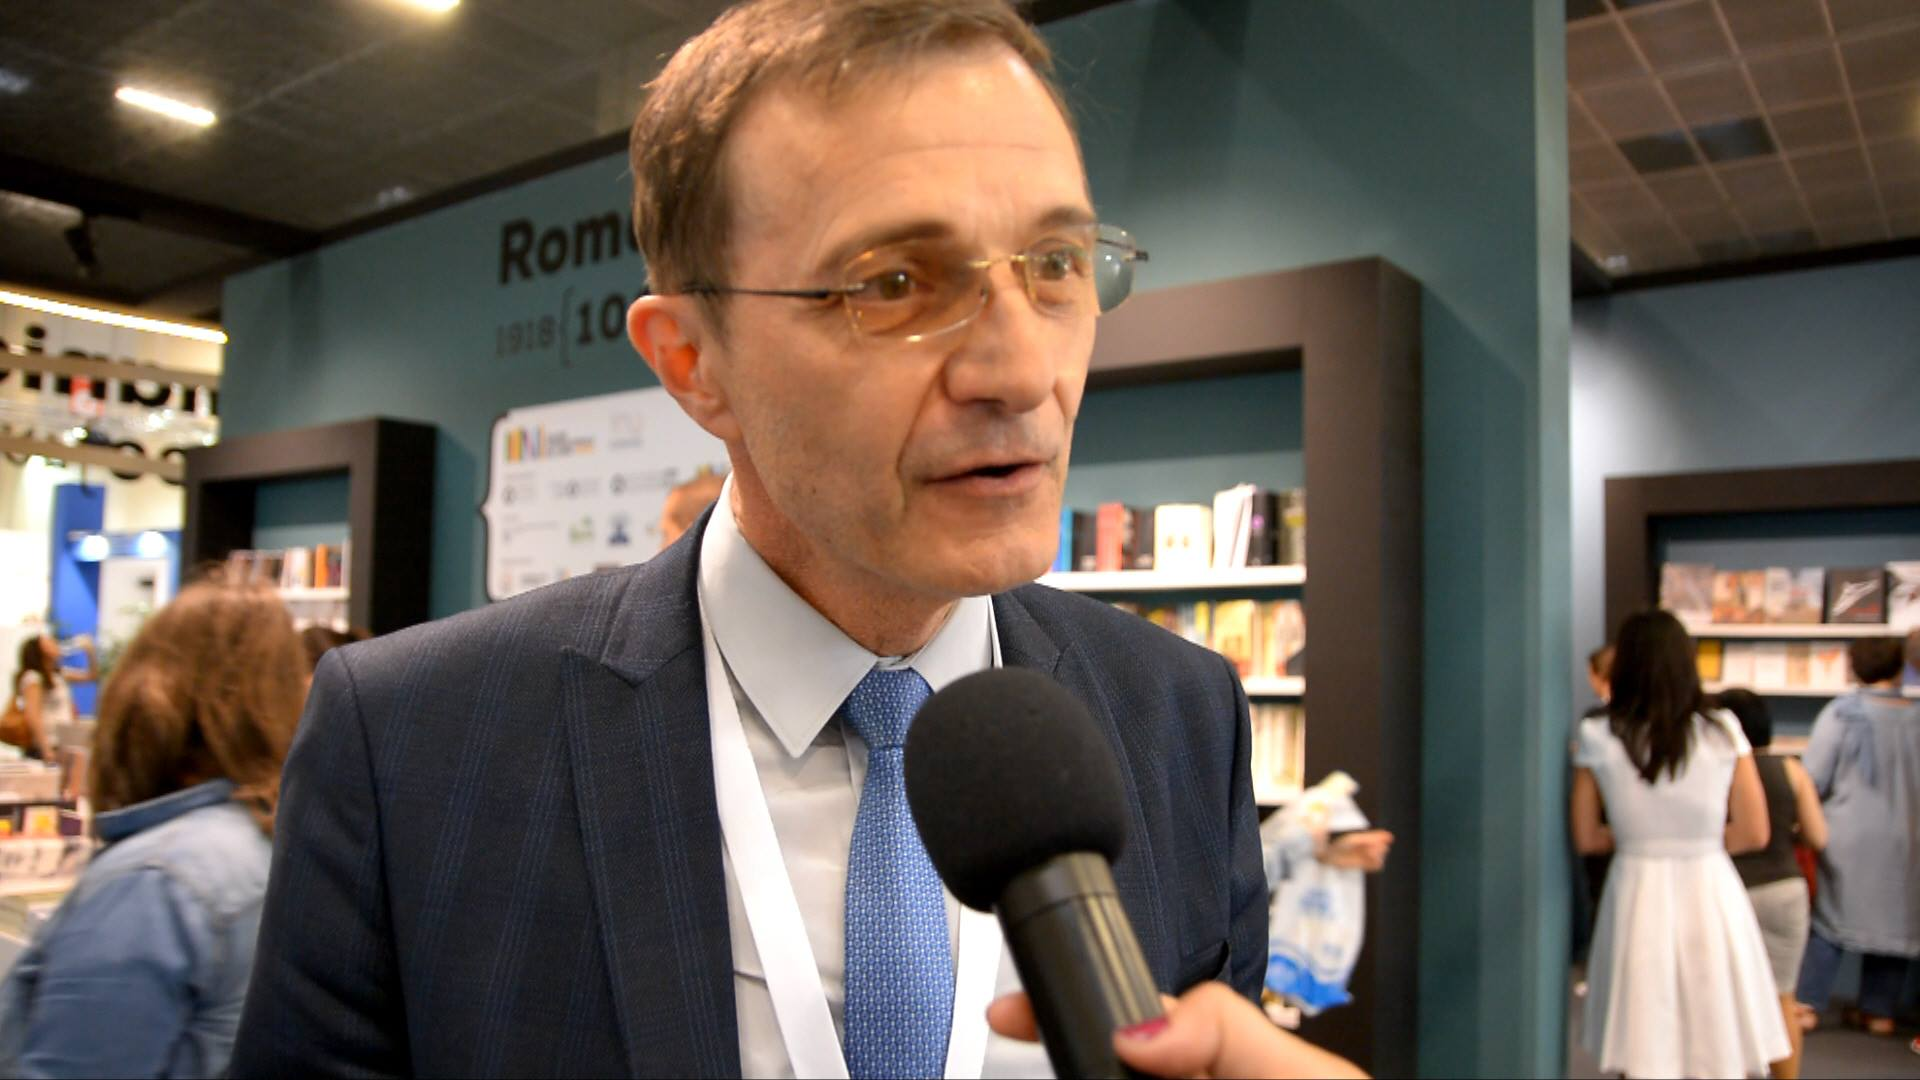 Video intervista: Ioan Aurel Pop, Presidente dell'Accademia Romena